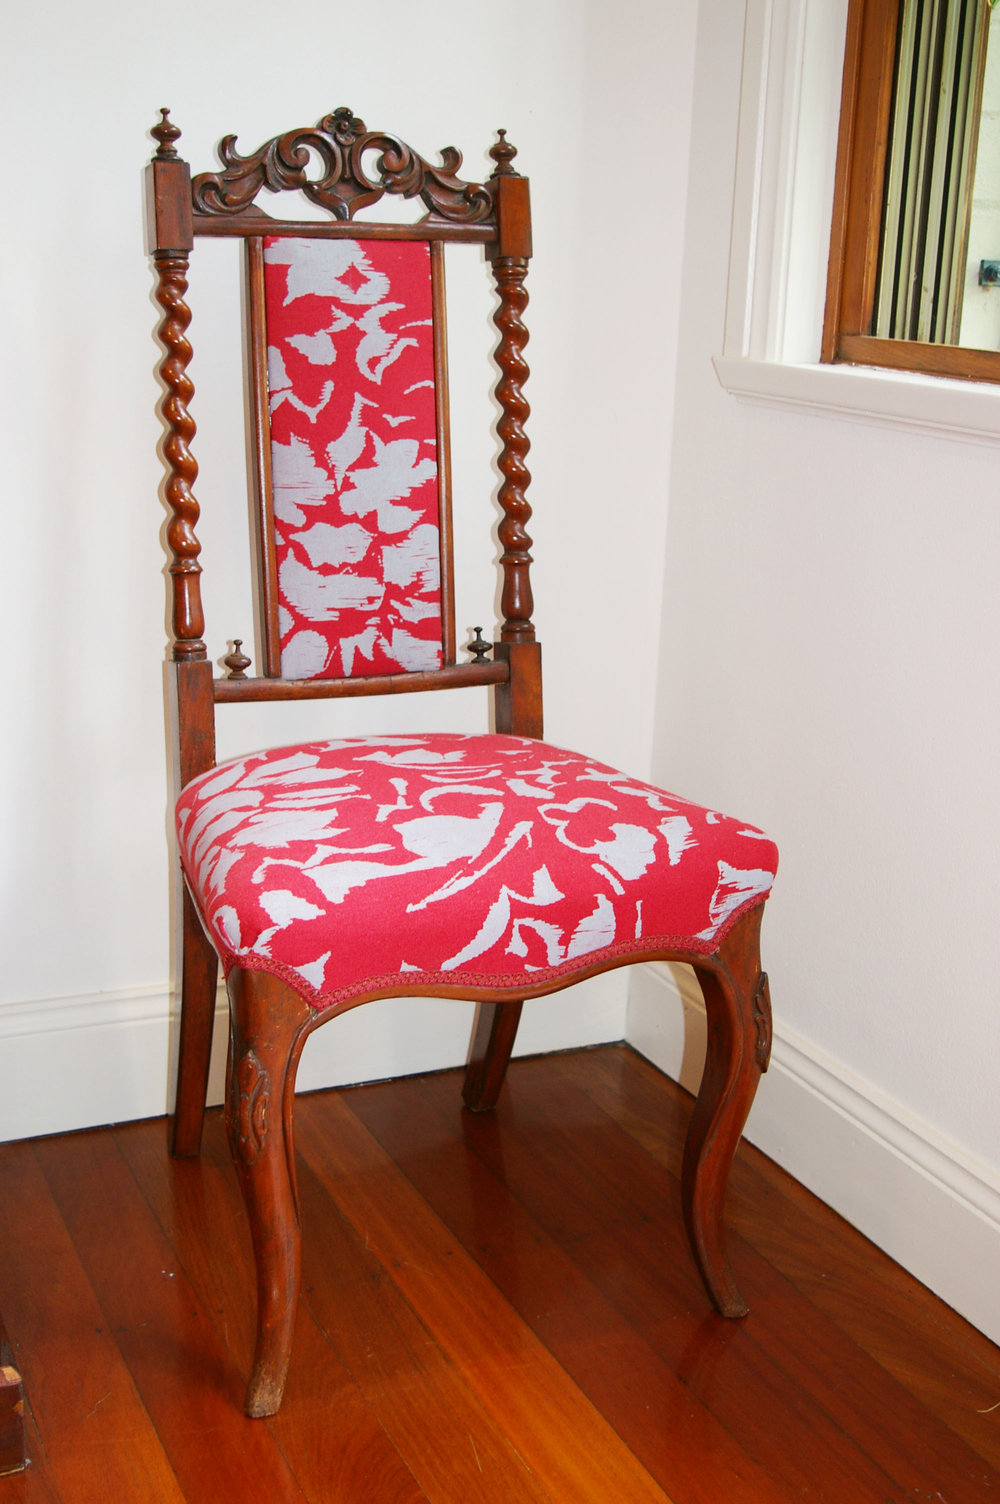 Damask Screenprint on Newport Berry fabric